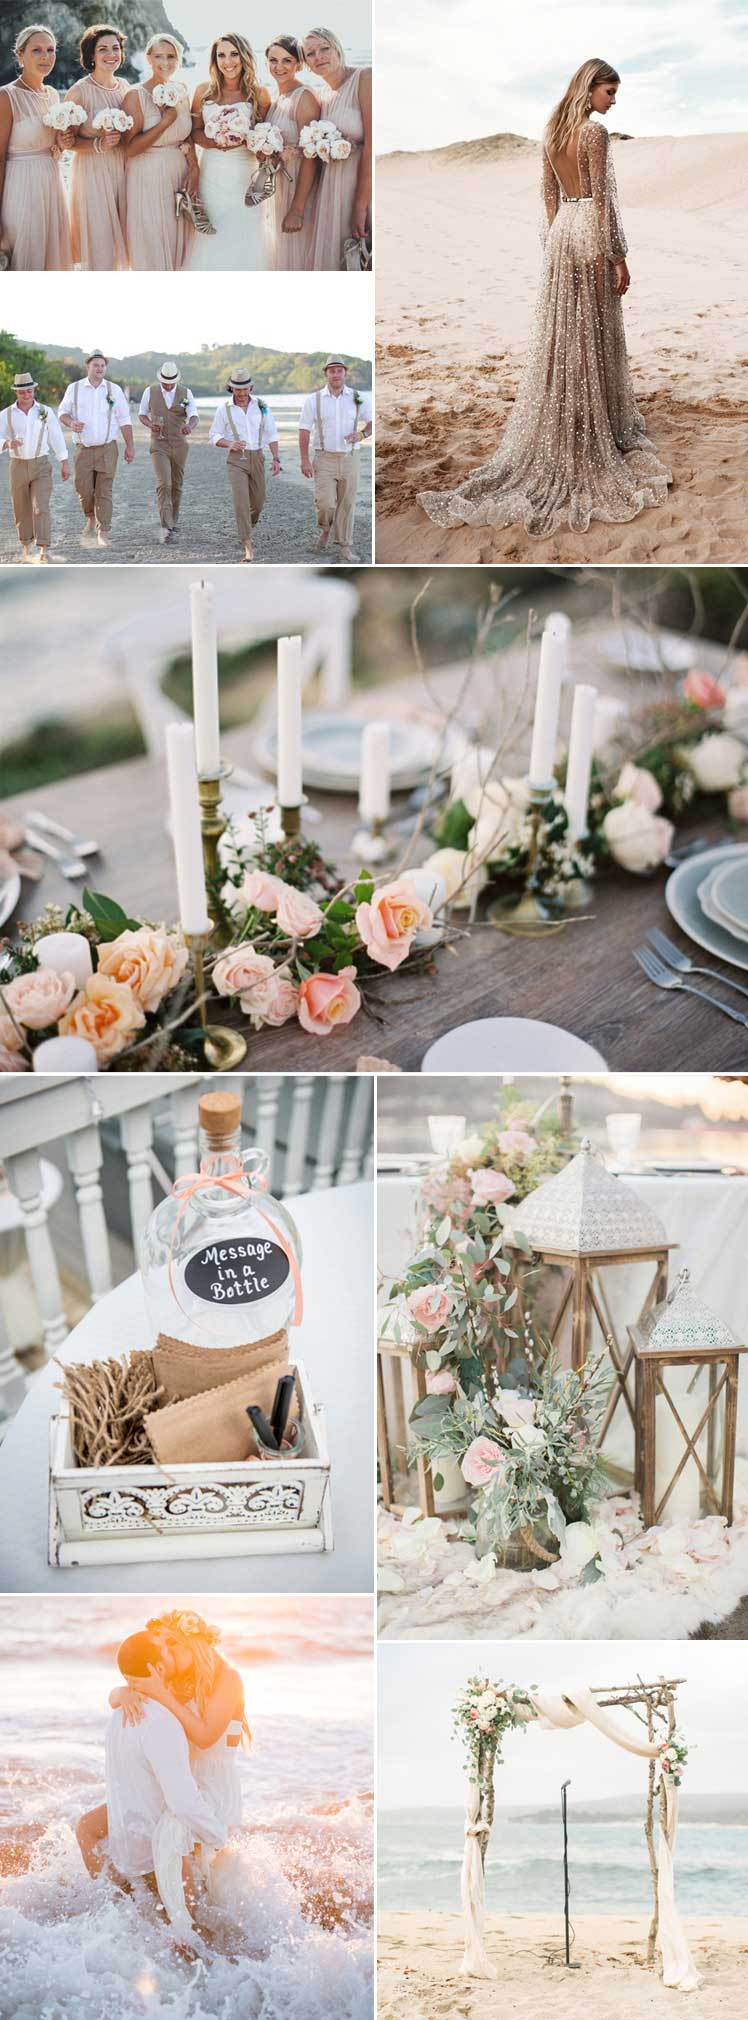 inspiration for a romantic beach wedding